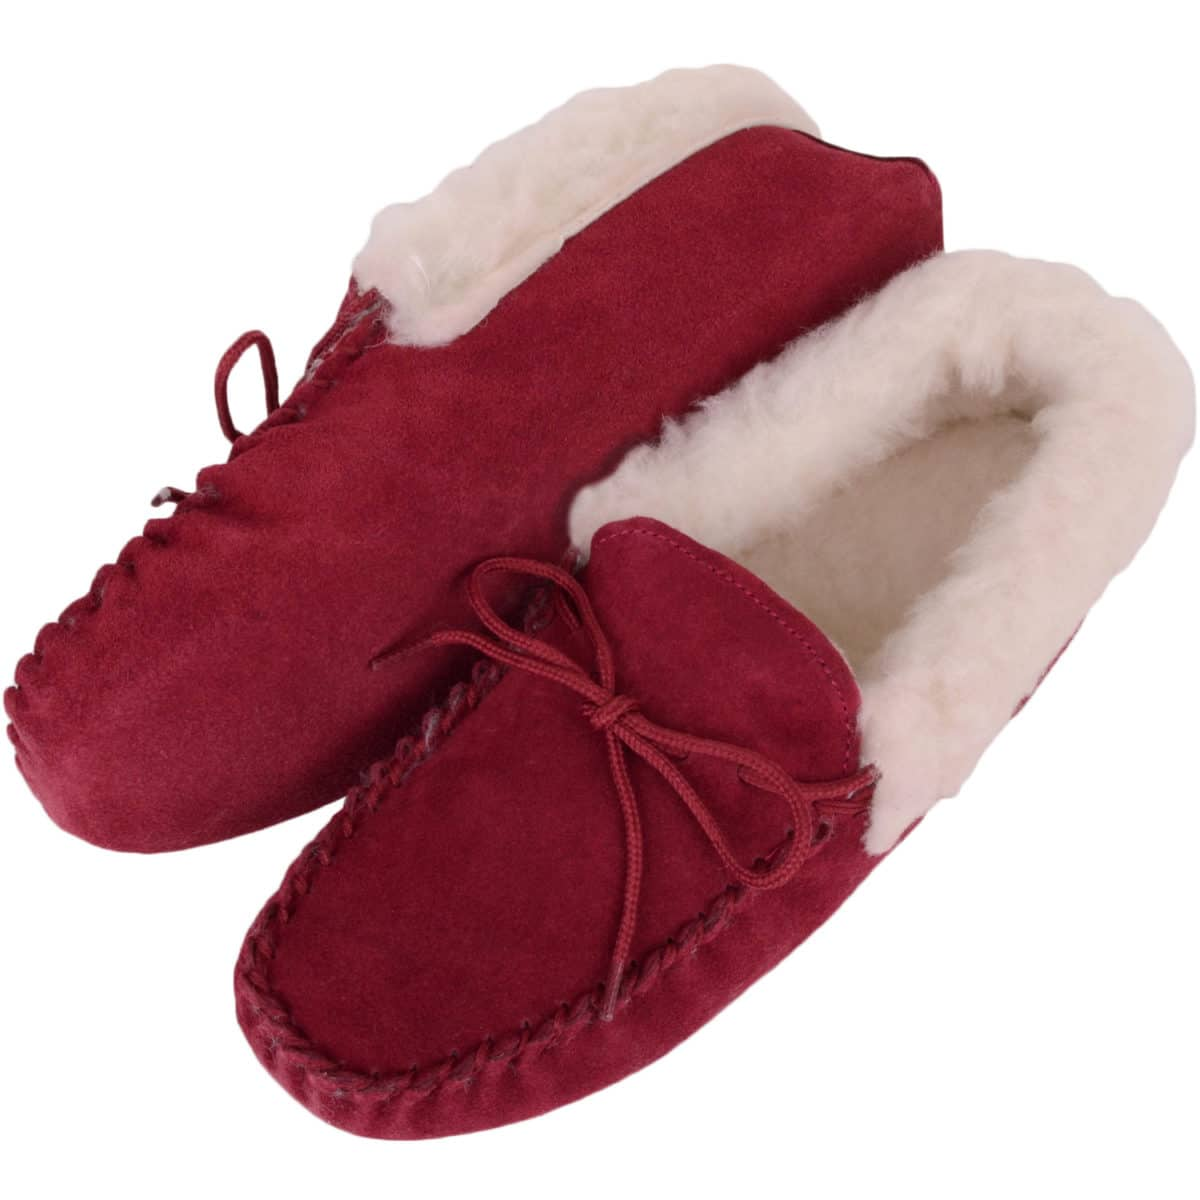 Snugrugs Soft Sole Wool Cuff Moccasin - Crimson